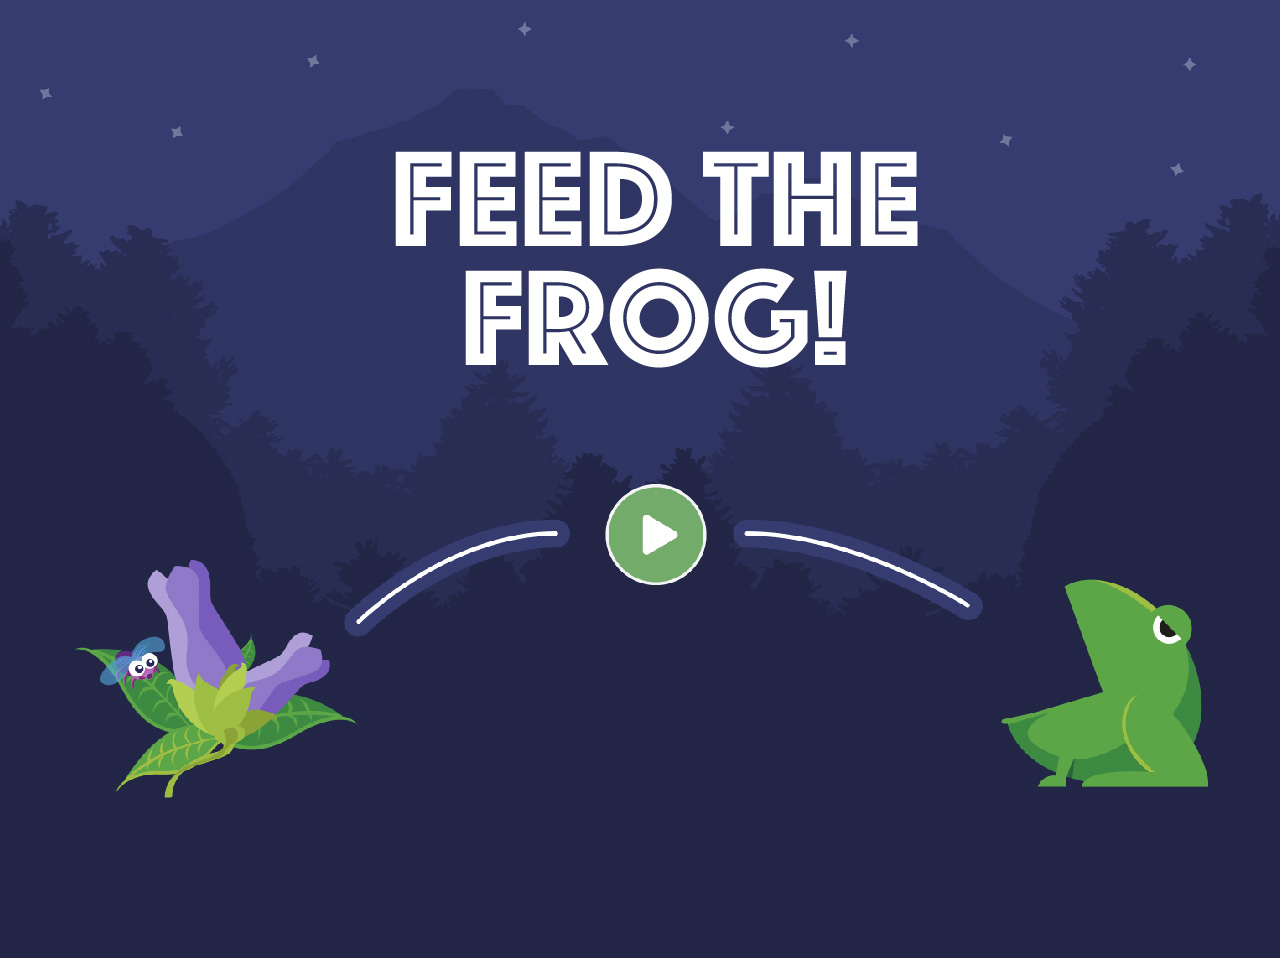 Feed The Frog screenshot 1